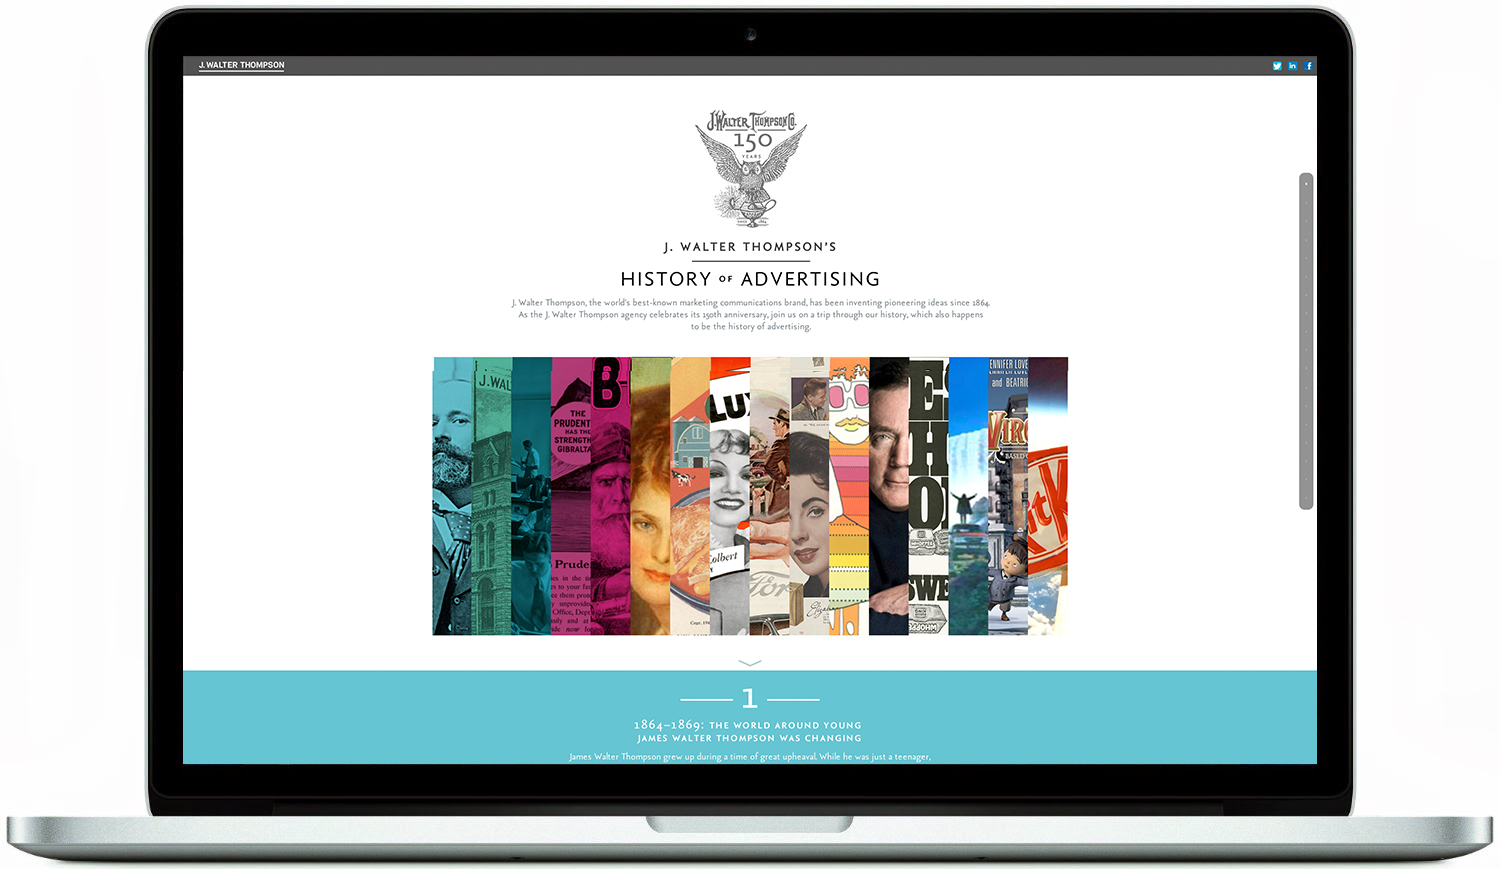 Click to go to J. Walter Thompson's History of Advertising Website